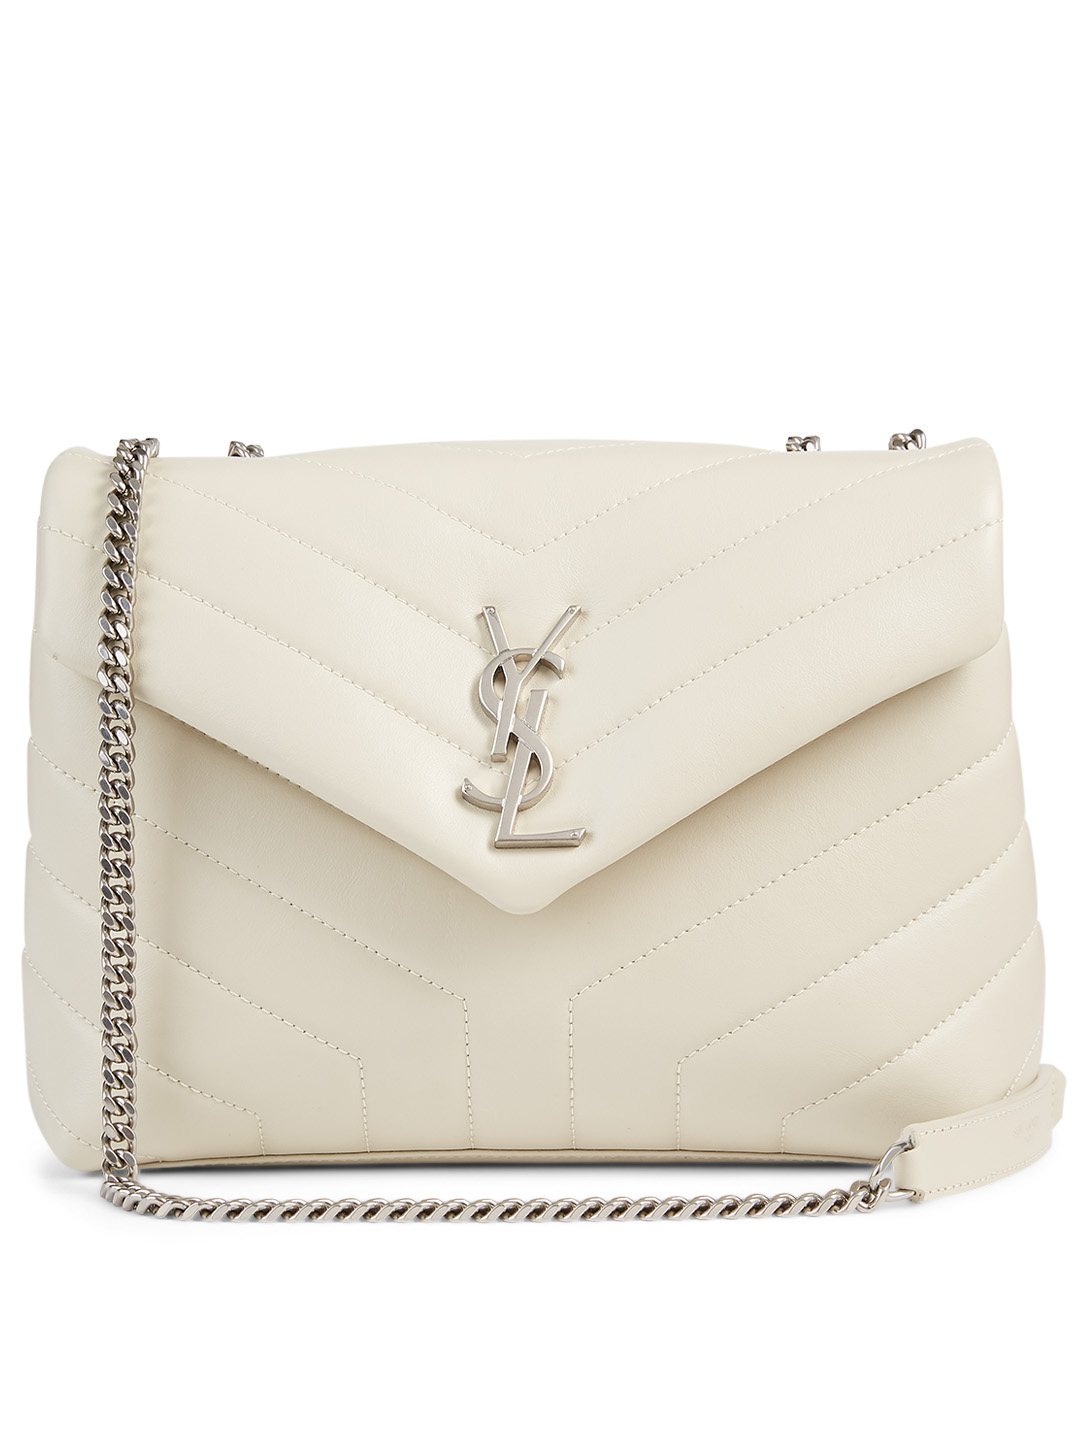 SAINT LAURENT Small Loulou YSL Monogram Leather Chain Bag Women's White